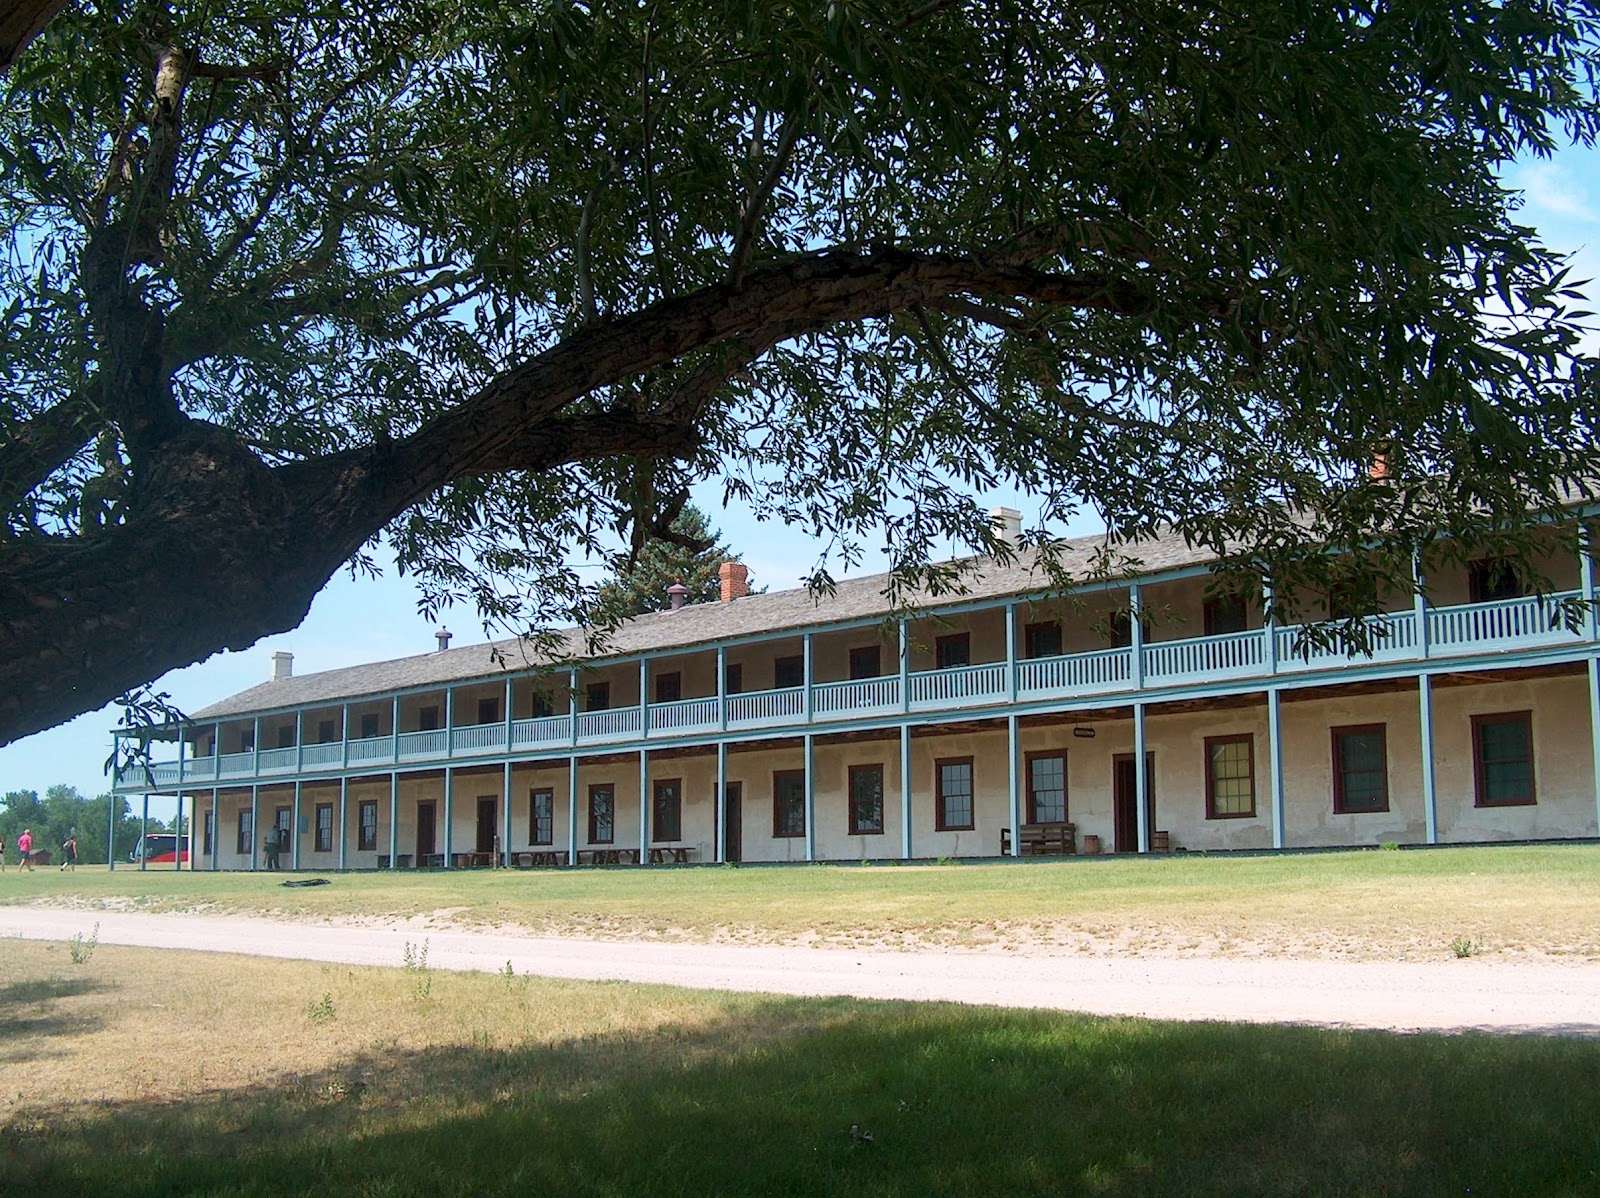 fort laramie Get directions, maps, and traffic for fort laramie, wy check flight prices and hotel availability for your visit.